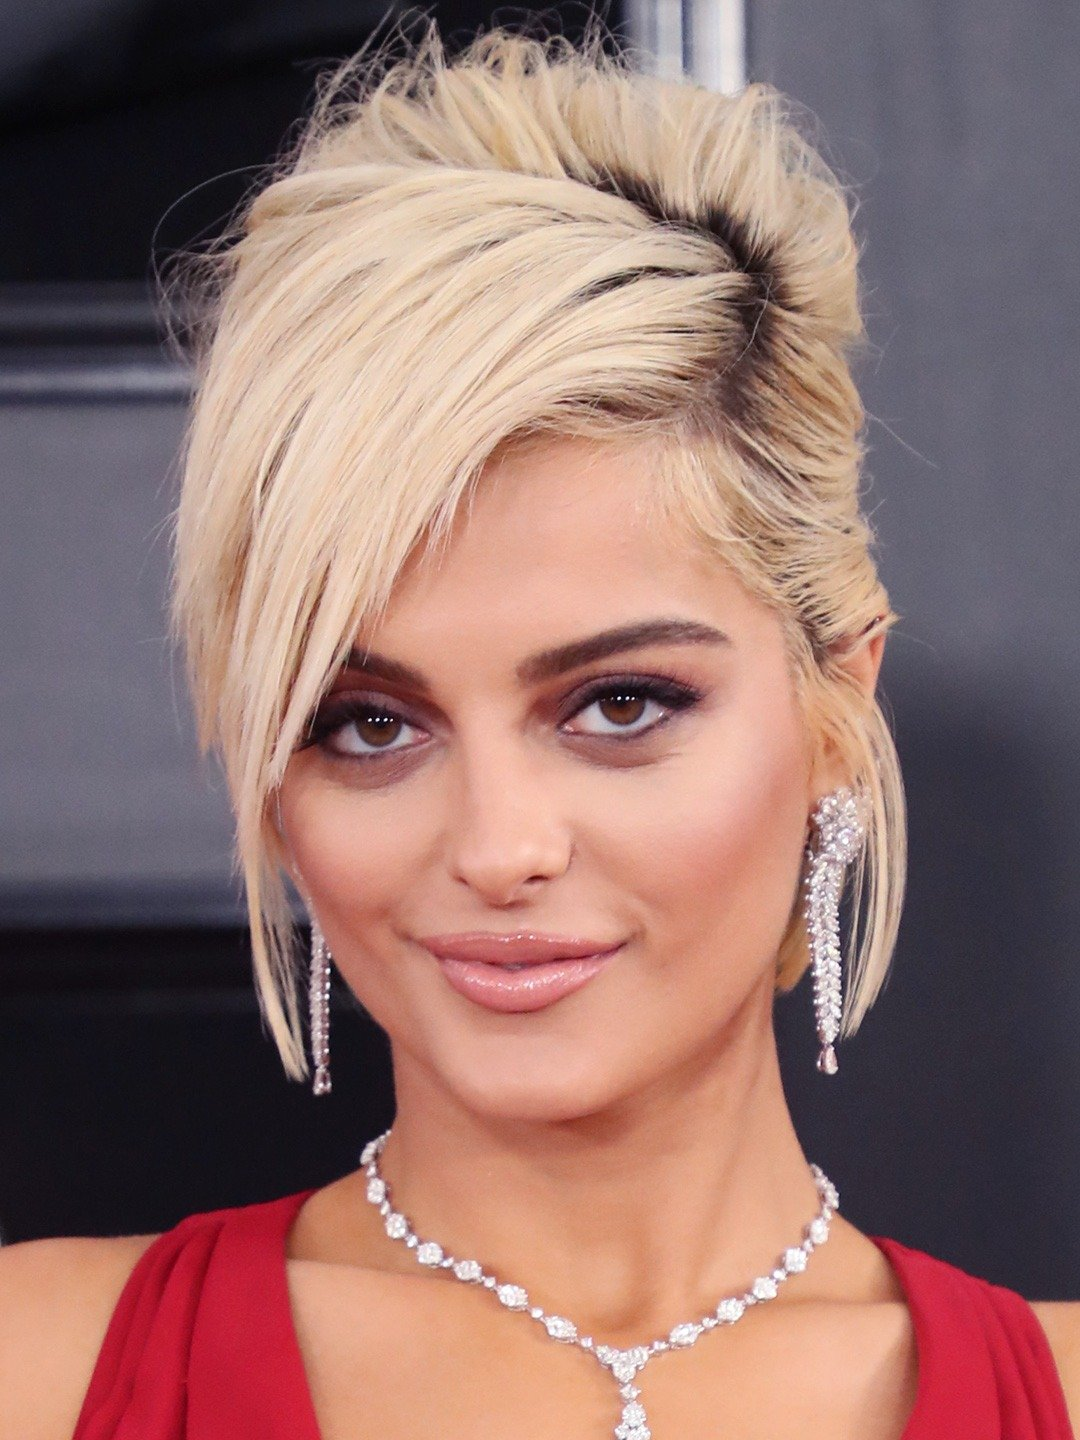 How tall is Bebe Rexha?